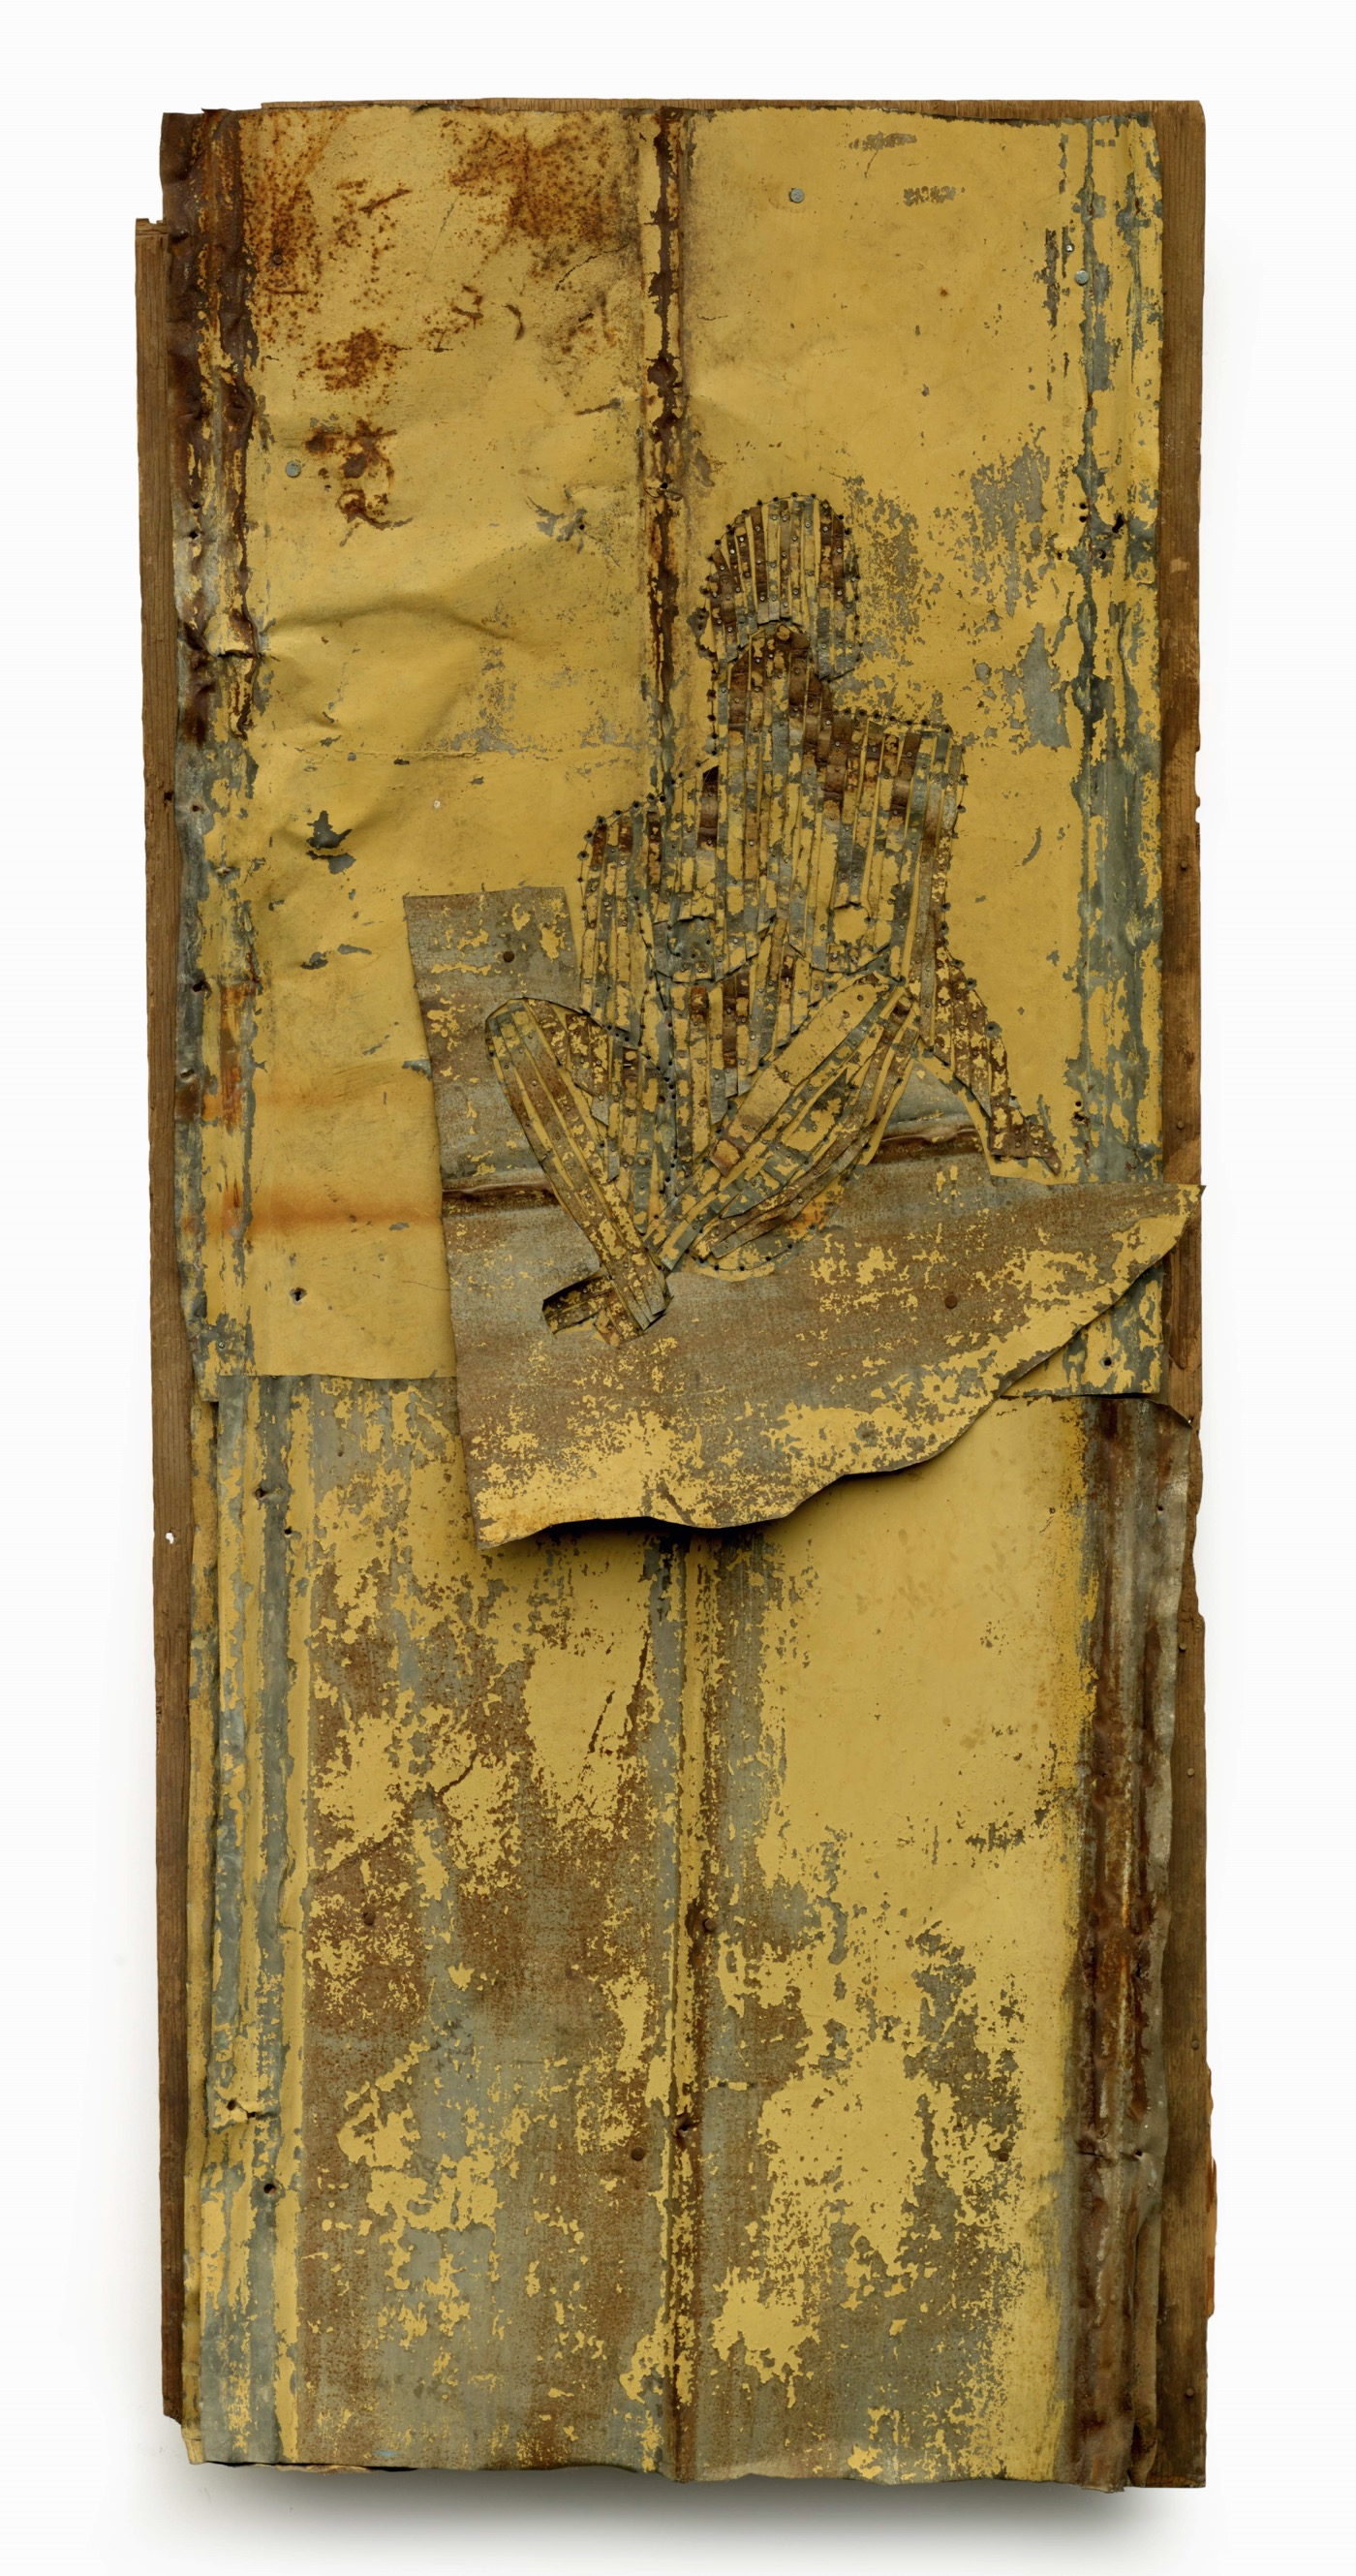 """Fever Within Bessemer, Alabama 1995 Tin, colored pencil, and nails on wood 66 1/2 x 30 x 2"""" Collection of Souls Grown Deep Foundation, L2015.2.1 Photo by Stephen Pitkin / Pitkin Studio"""